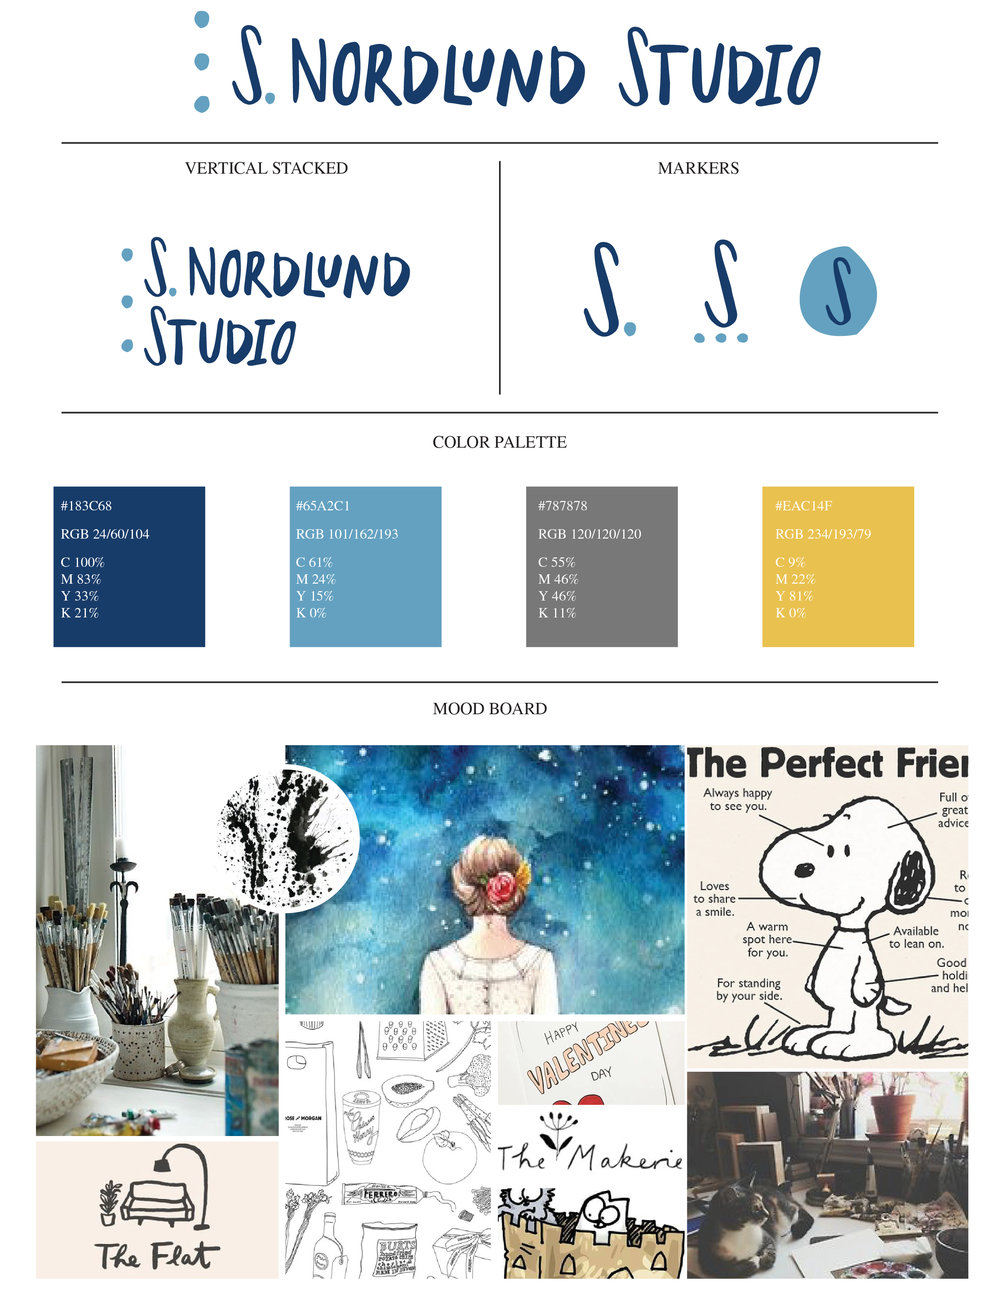 s. nordlund studio brand board with main logo, alternative logos, color palette, and mood board